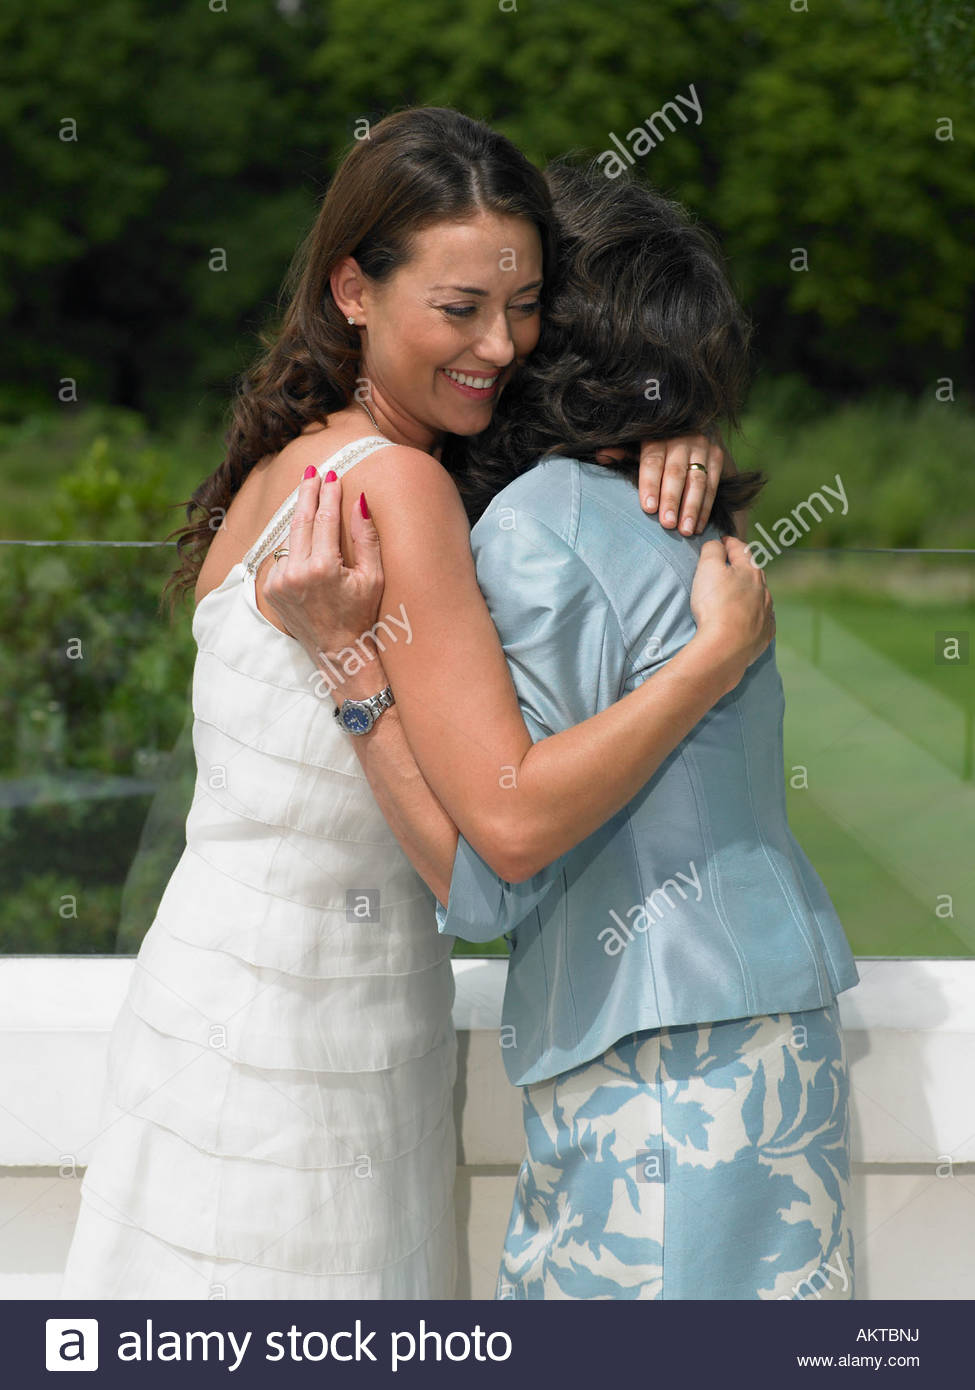 A wedding guest hugging the bride - Stock Image